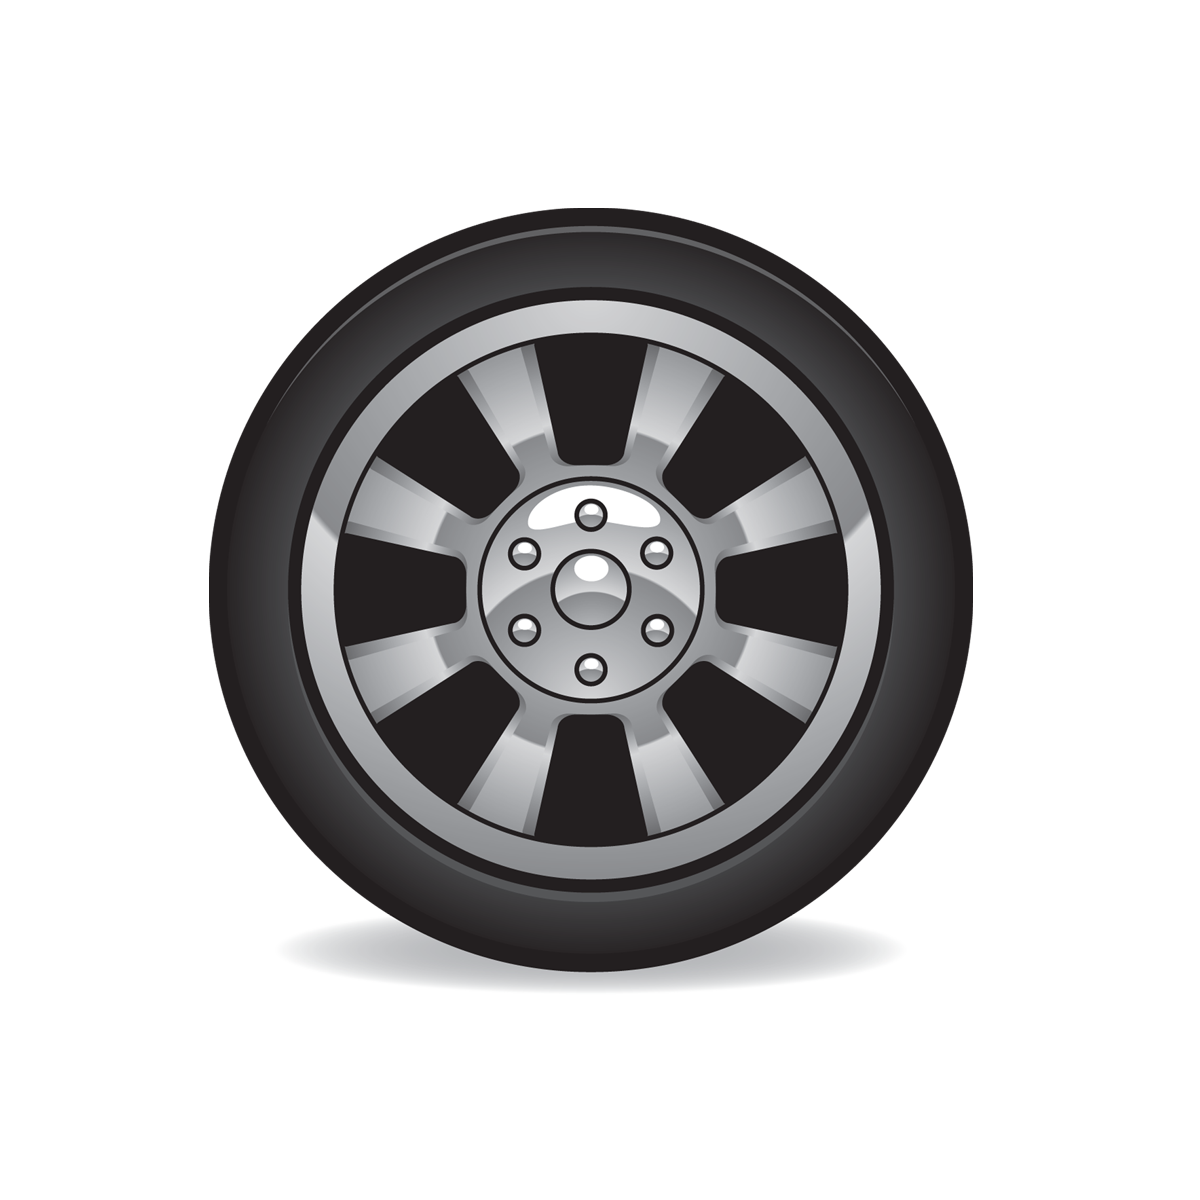 Tire svg #1, Download drawings